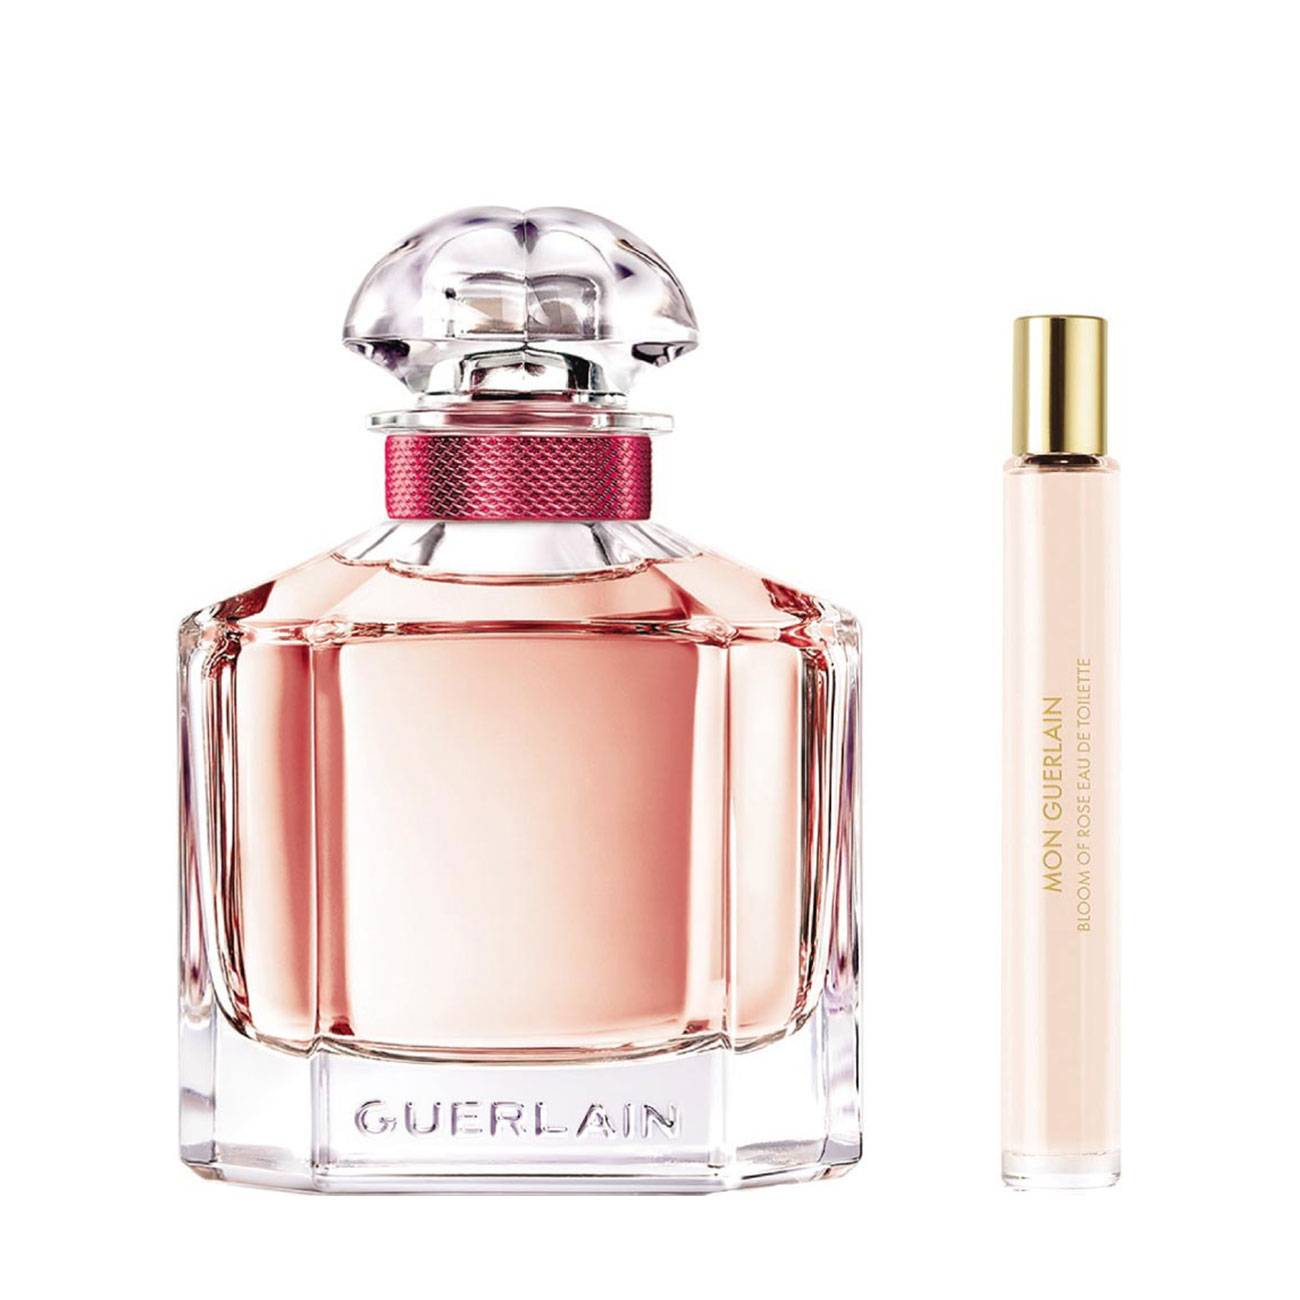 MON GUERLAIN SET 115ml imagine produs